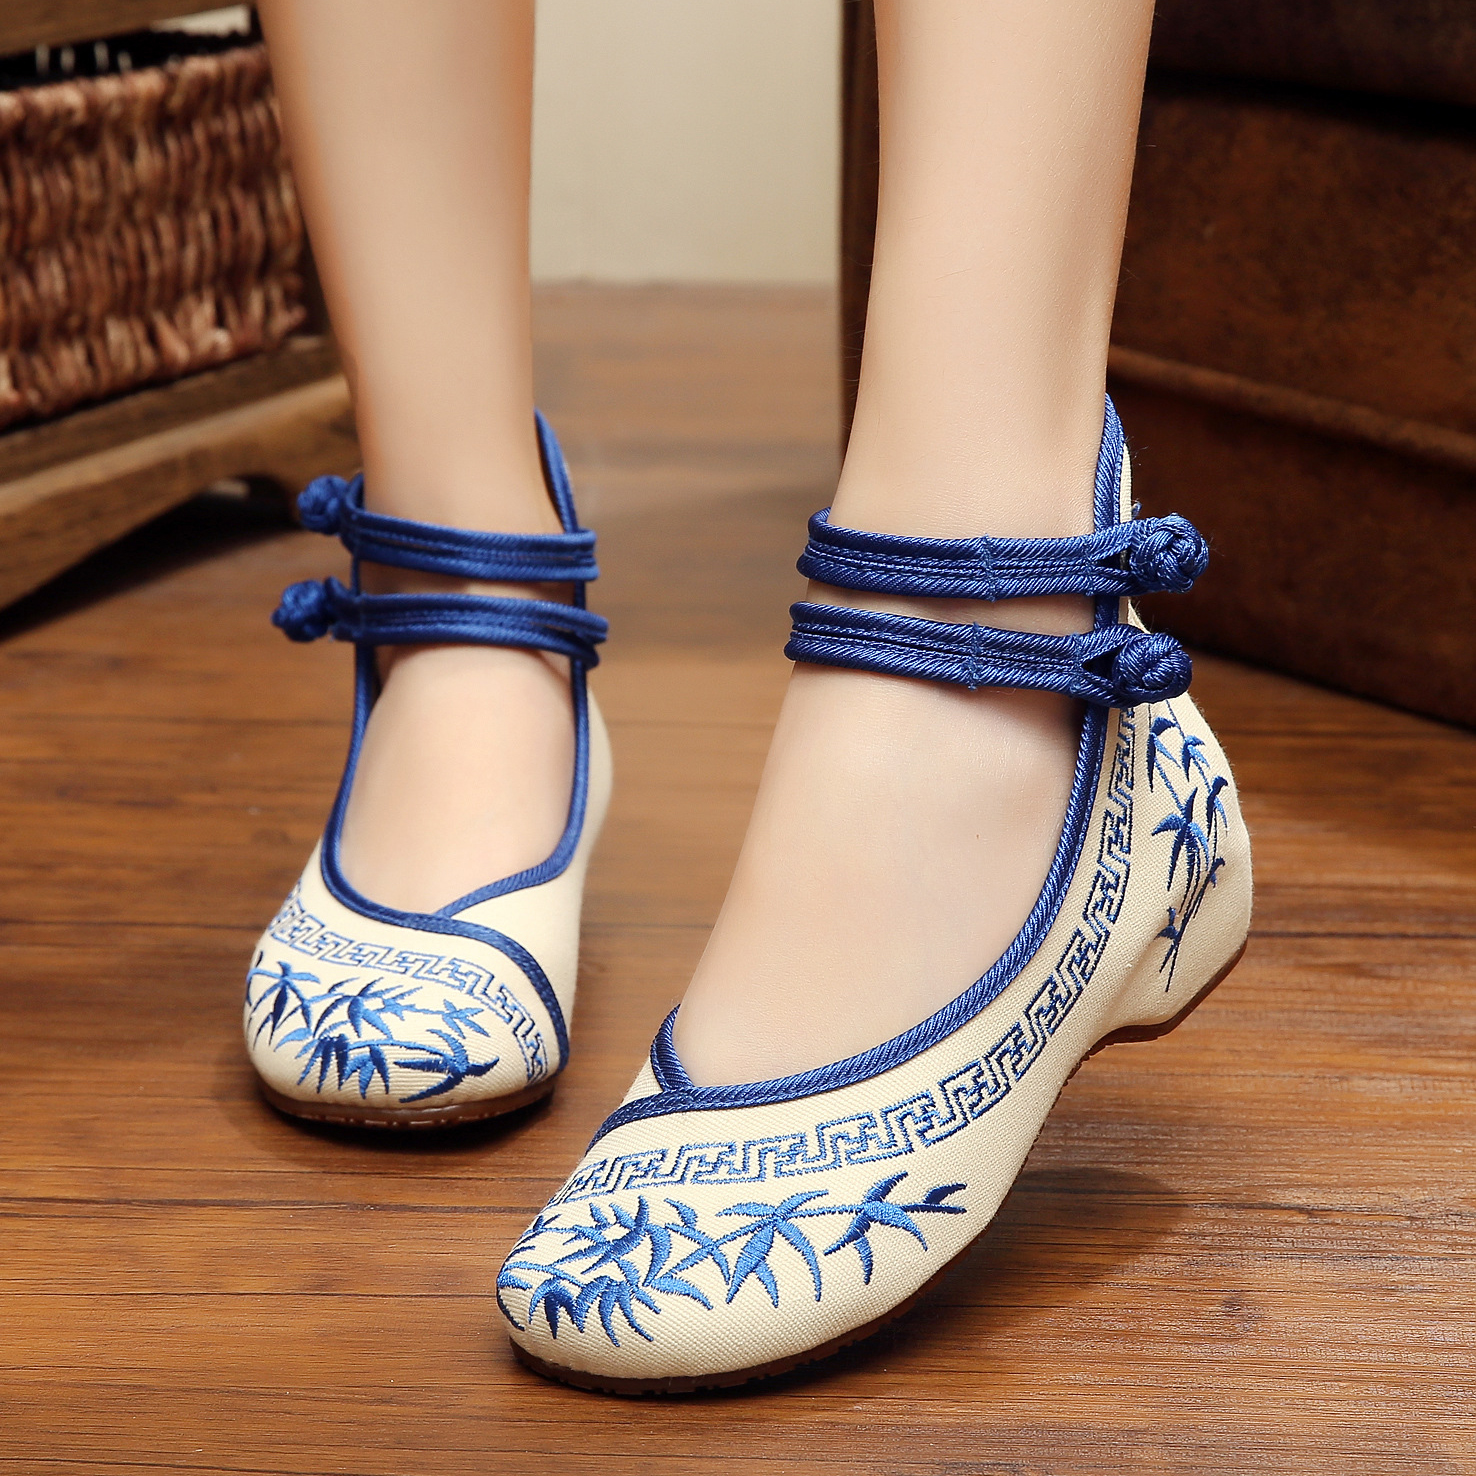 2017 new bamboo embroidery Chinese style simple and comfortable oxford shoes women fashion casual flats shoes for ladies<br><br>Aliexpress